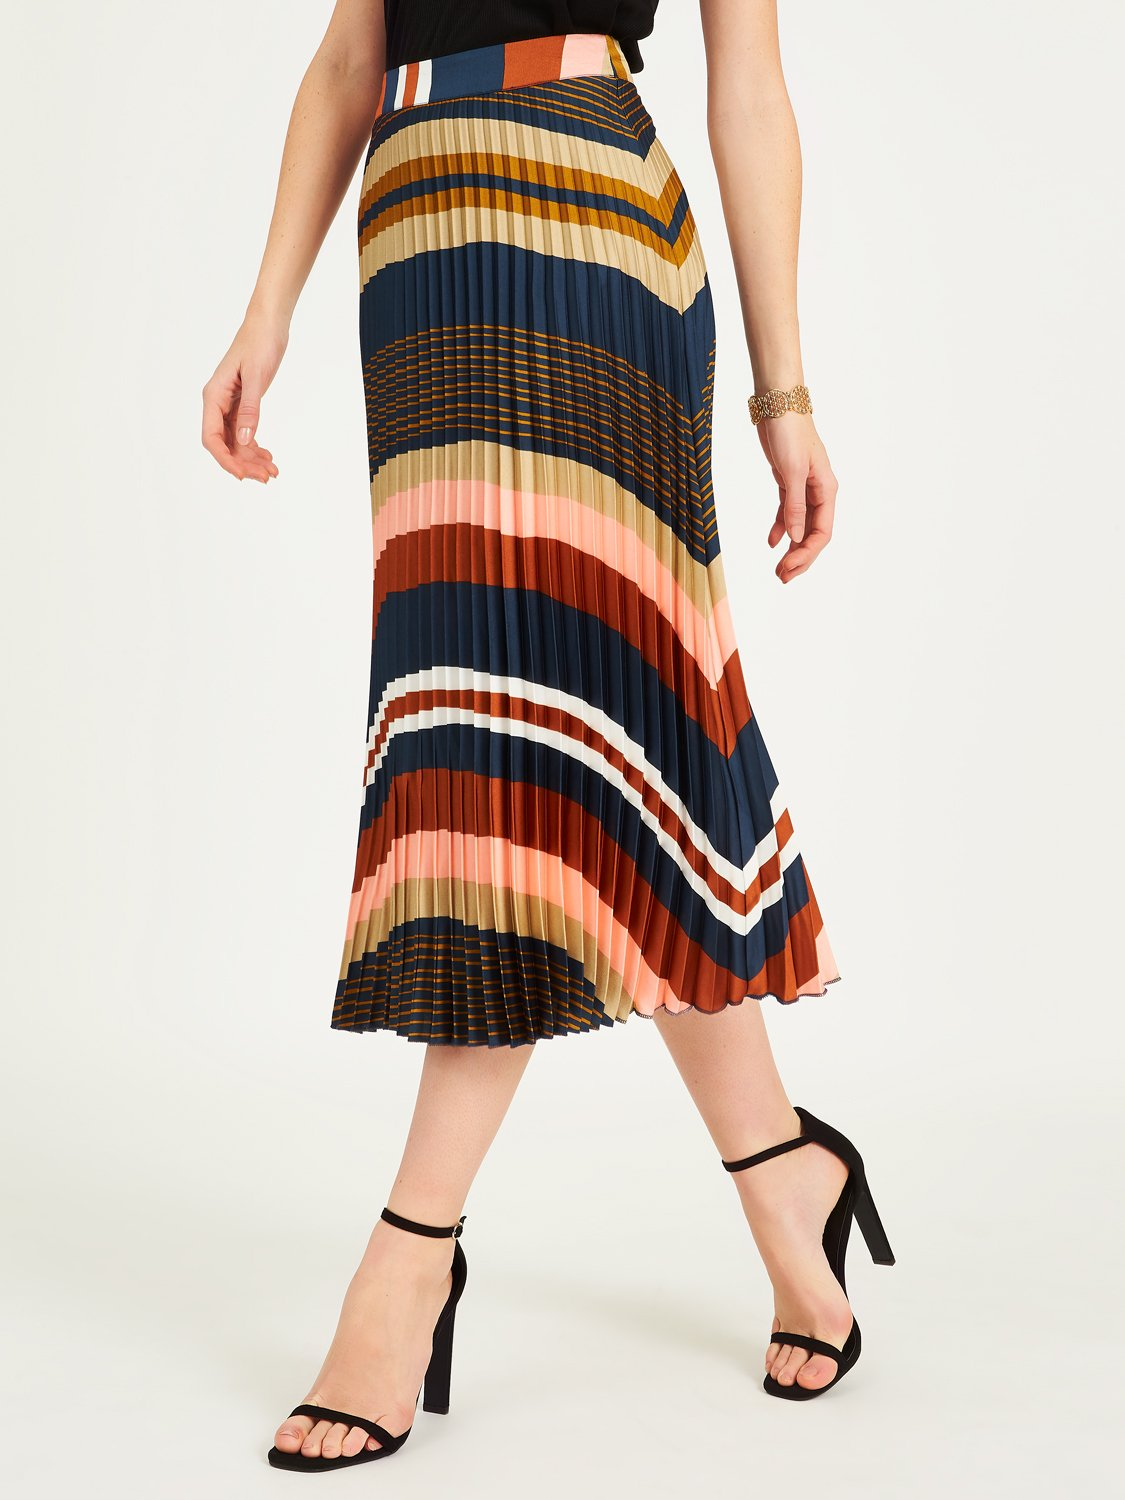 Multicolored Horizontal Striped Pleated Skirt